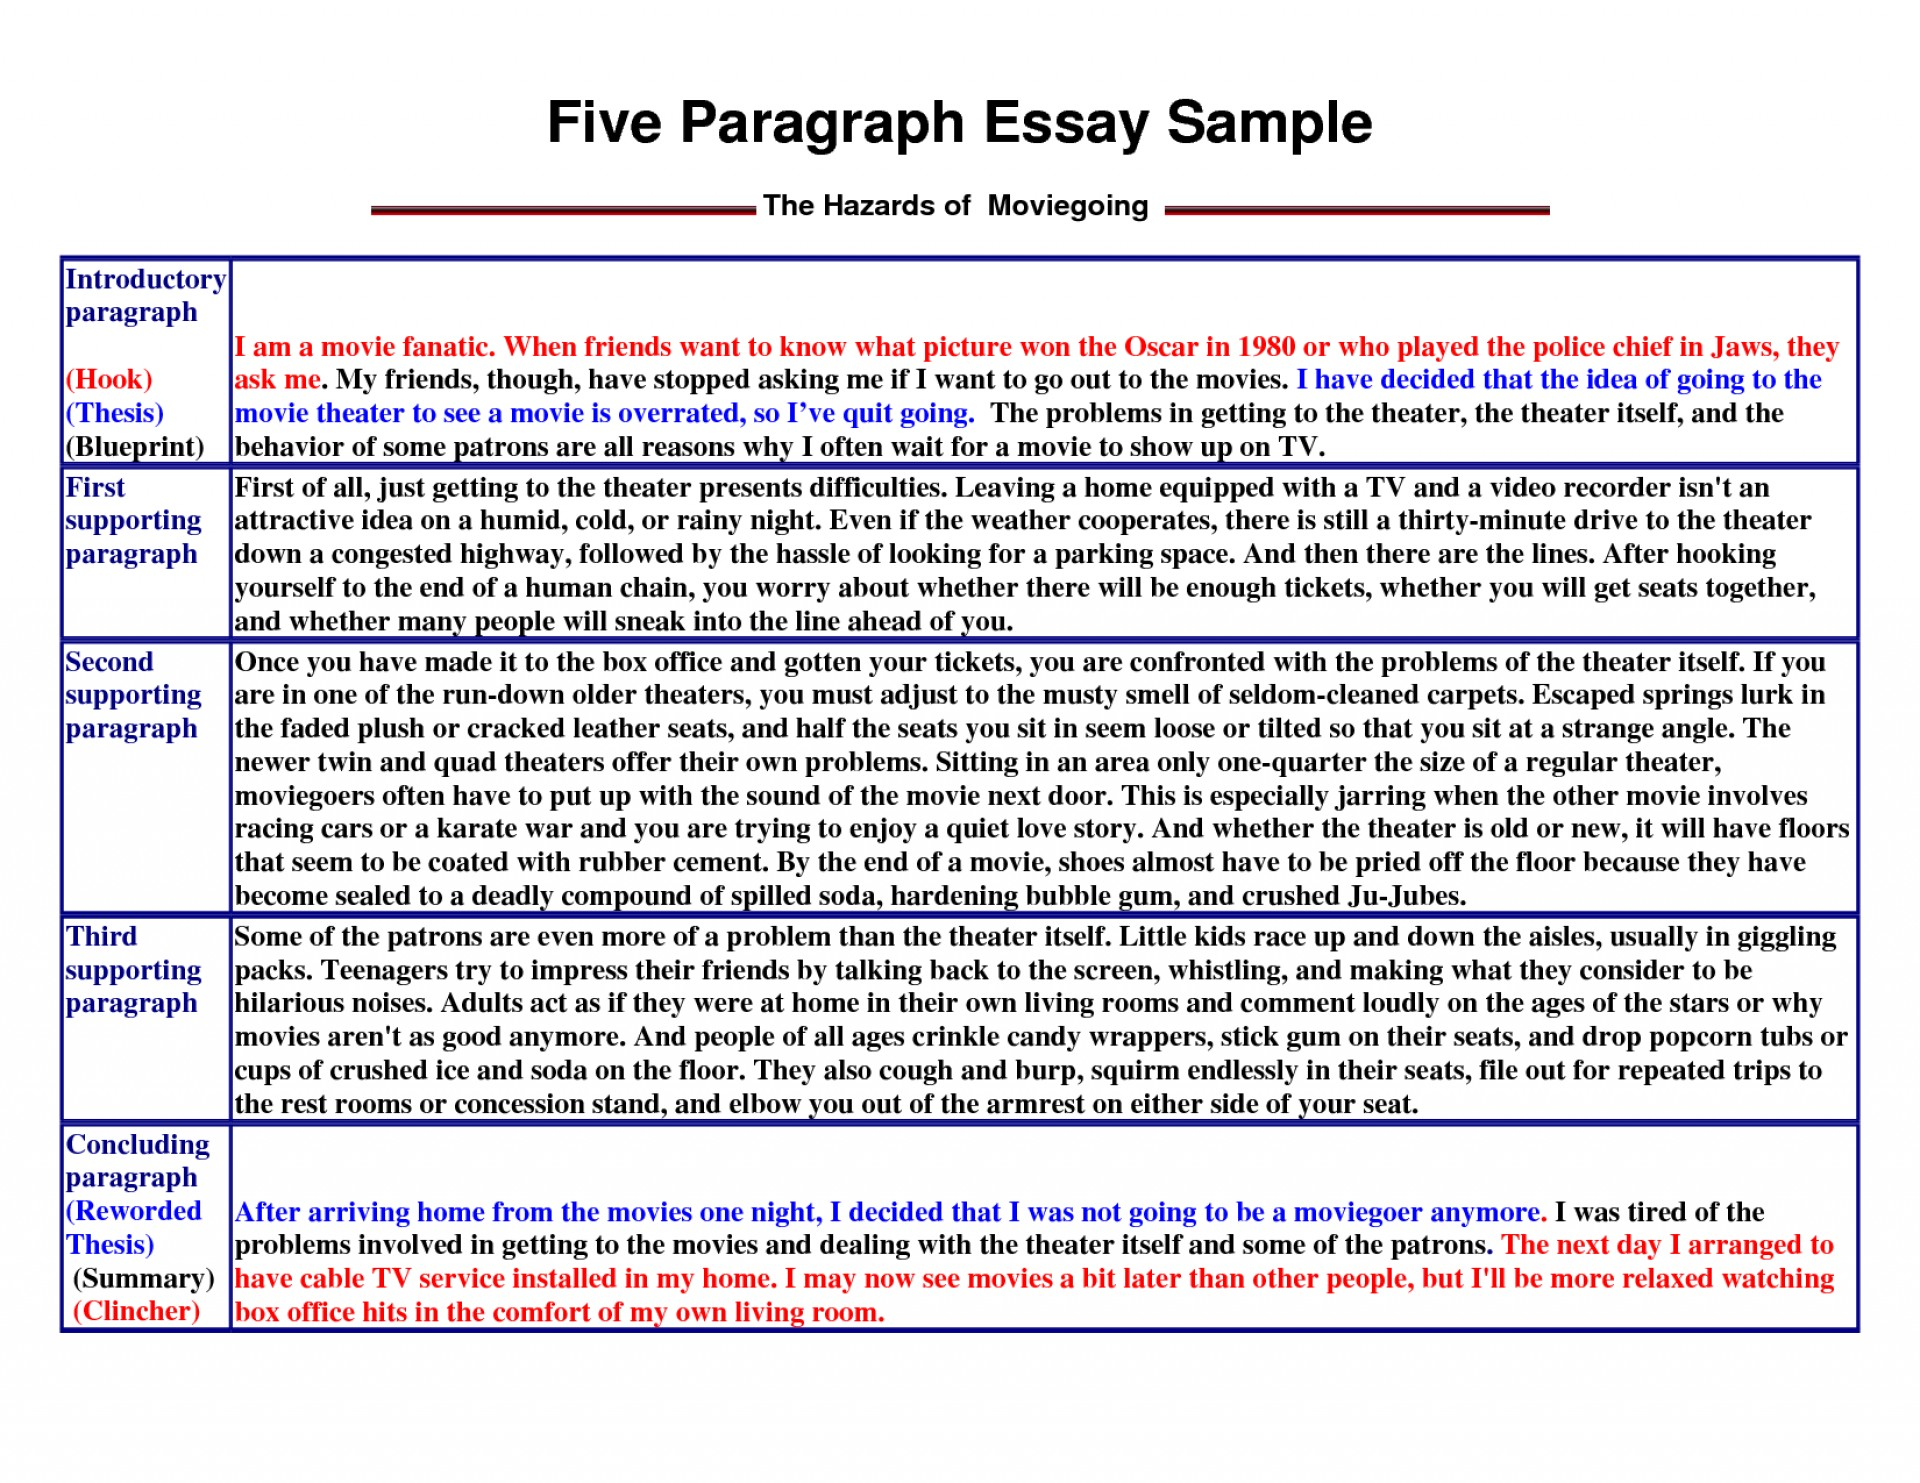 002 Essay Example How To Write Unbelievable A 5 Paragraph In Mla Format 30 Minutes 1920